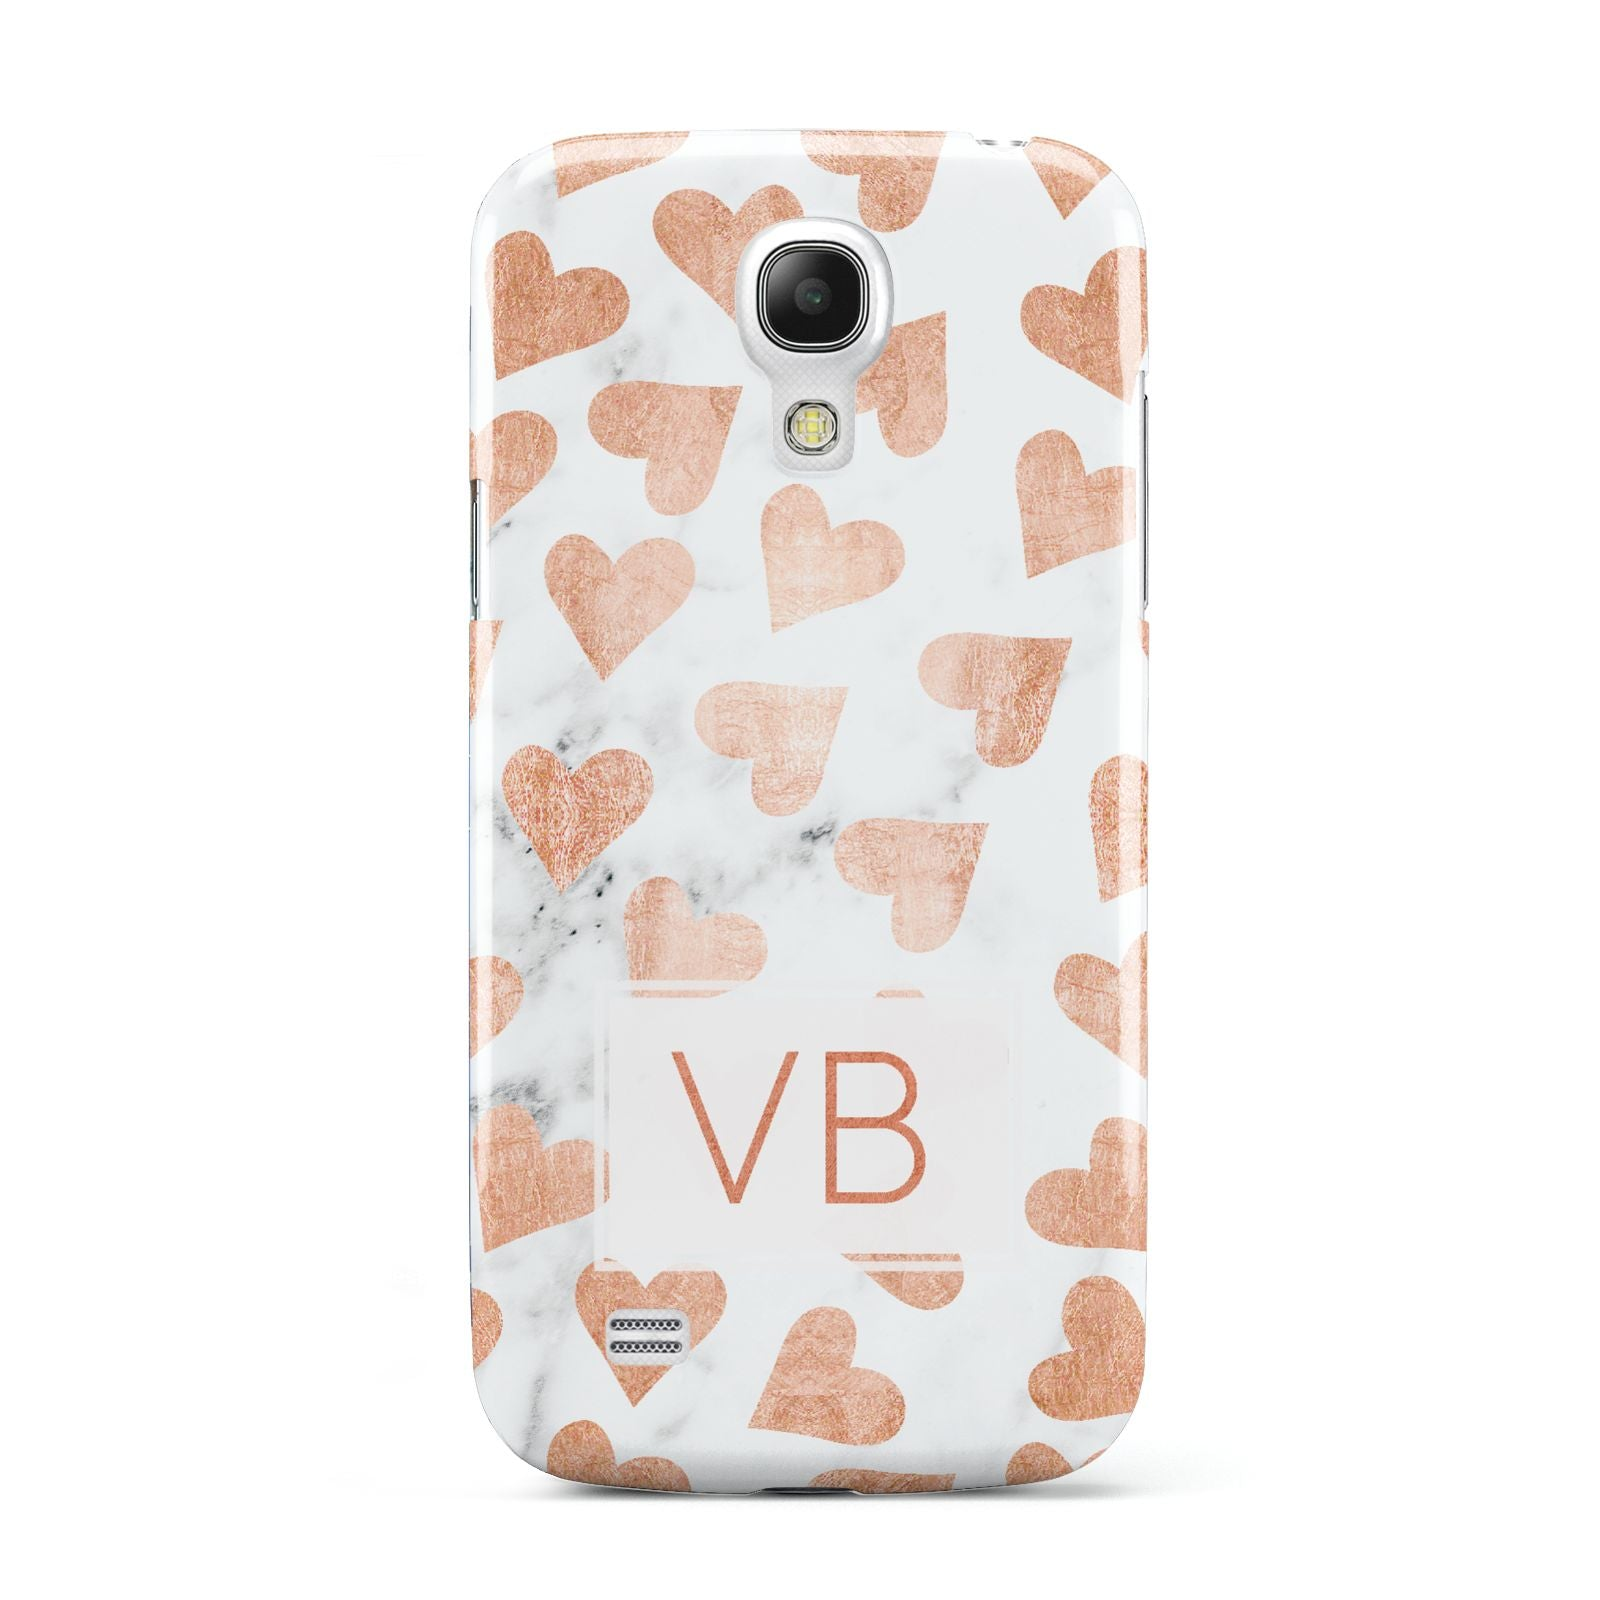 Personalised Heart Initialled Marble Samsung Galaxy S4 Mini Case